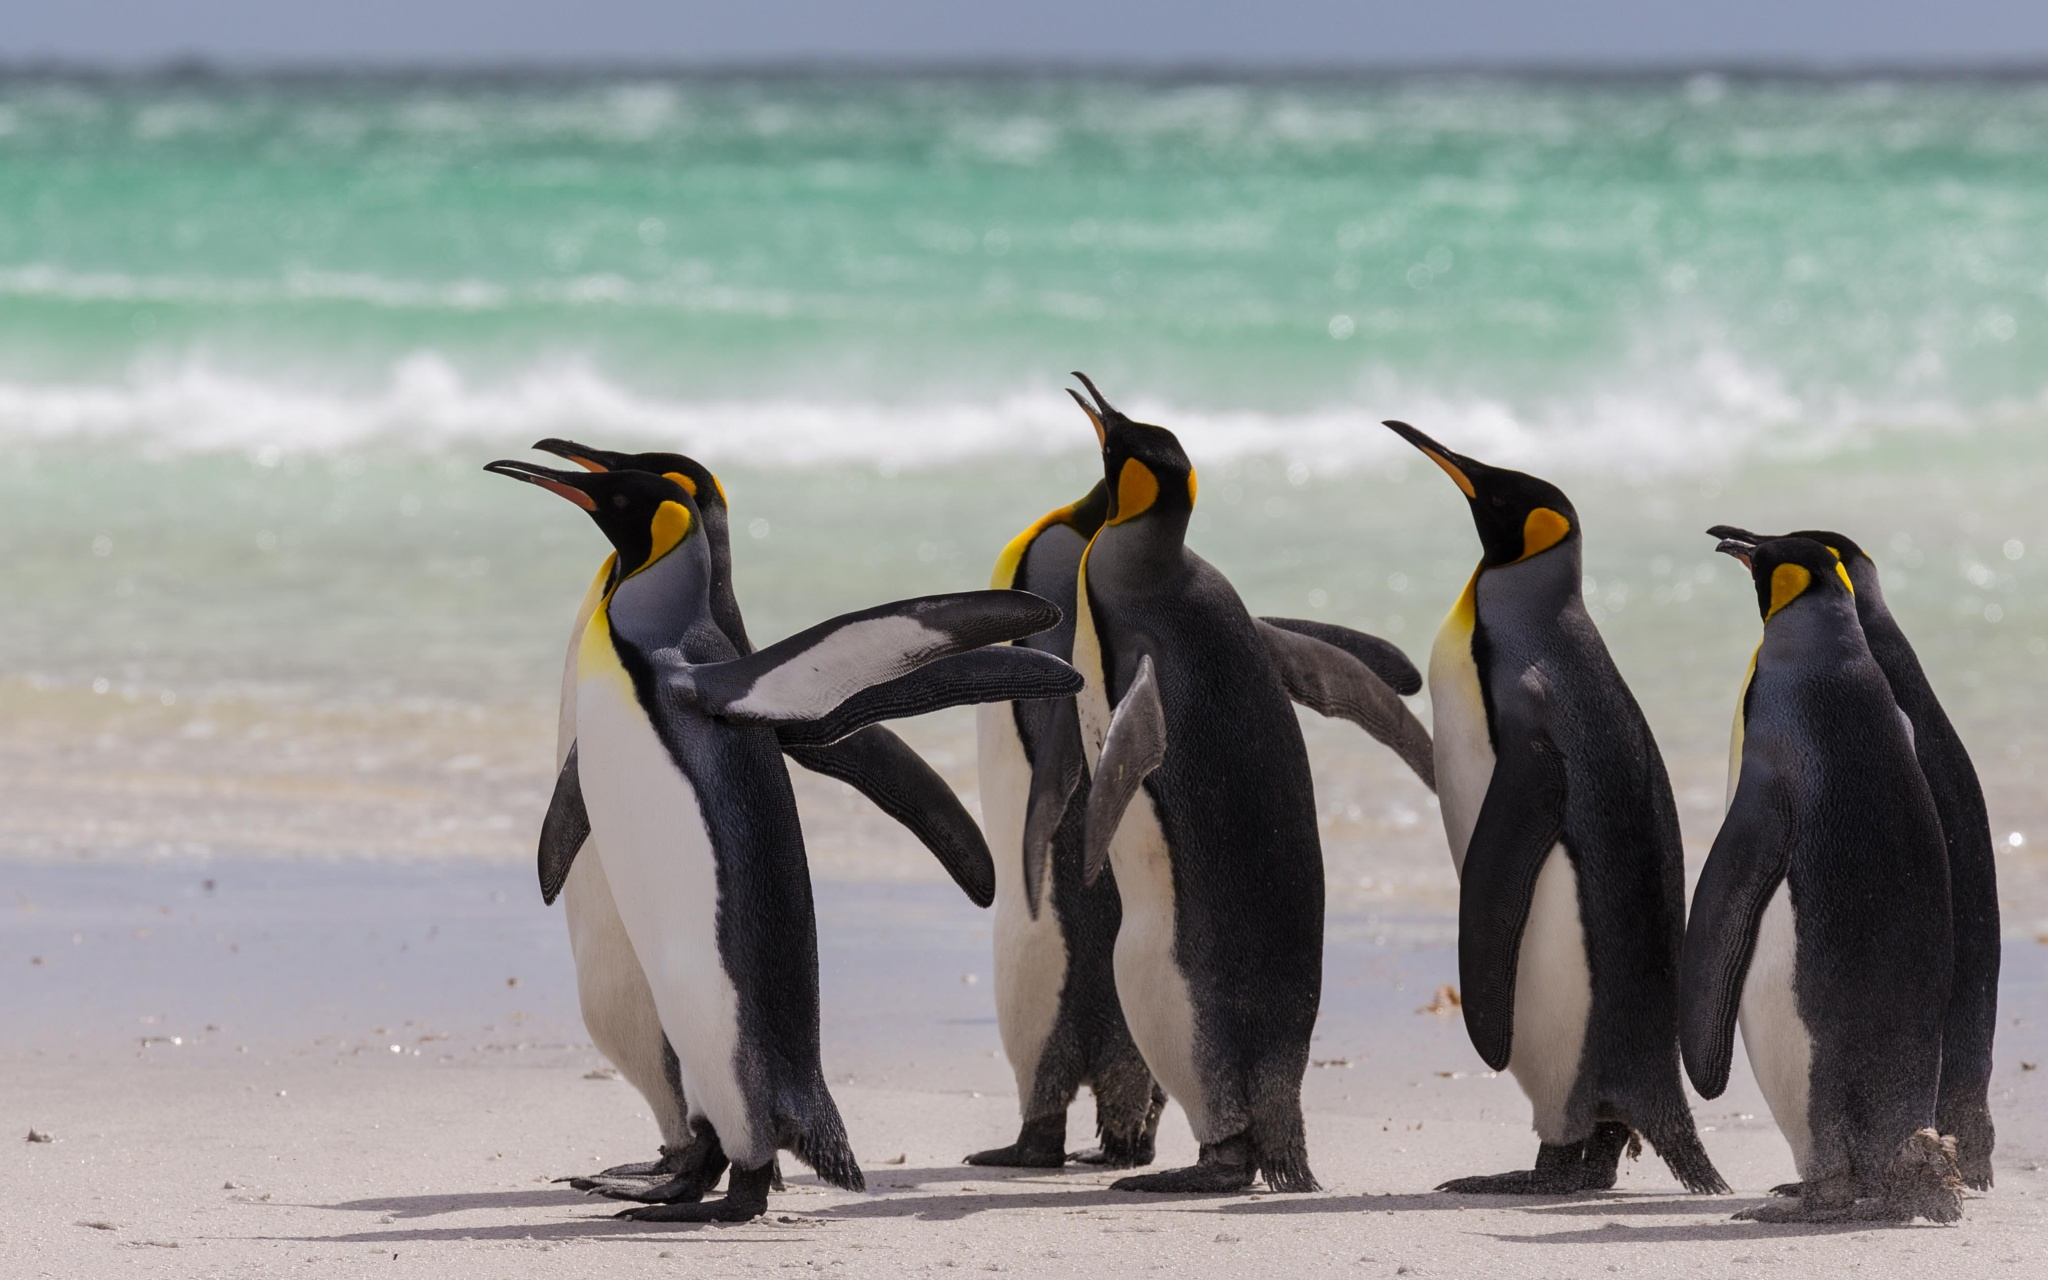 King penguins at the beach by hossamJaber